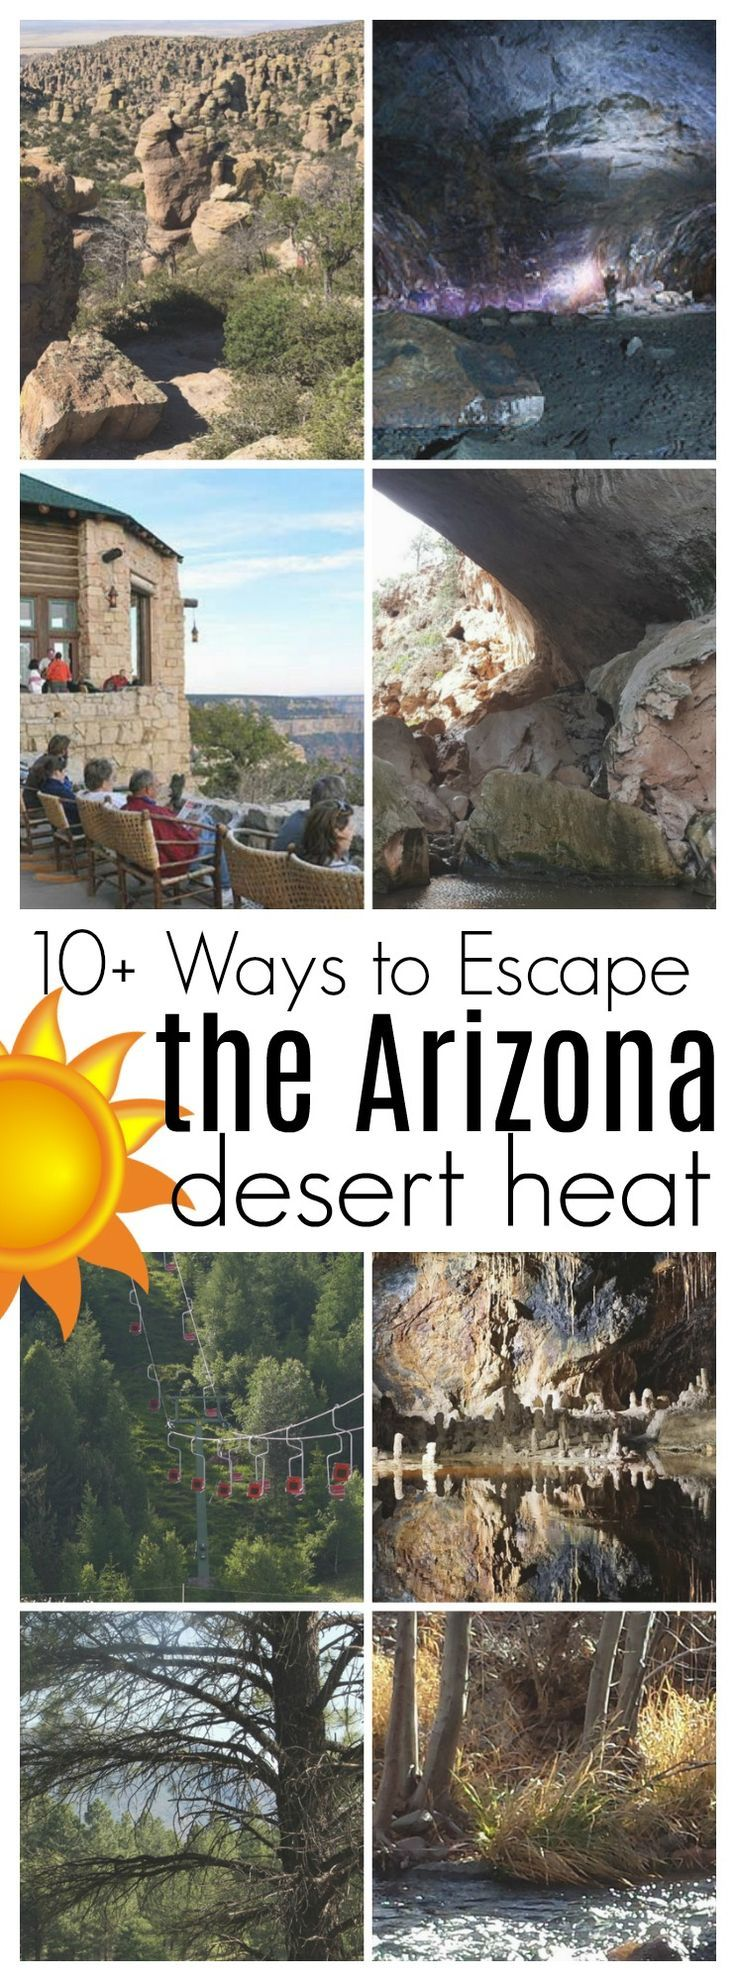 Looking for a way to cool off during the hot, Arizona summer? Here are over 10 ways to escape the Arizona desert heat. #desertlife